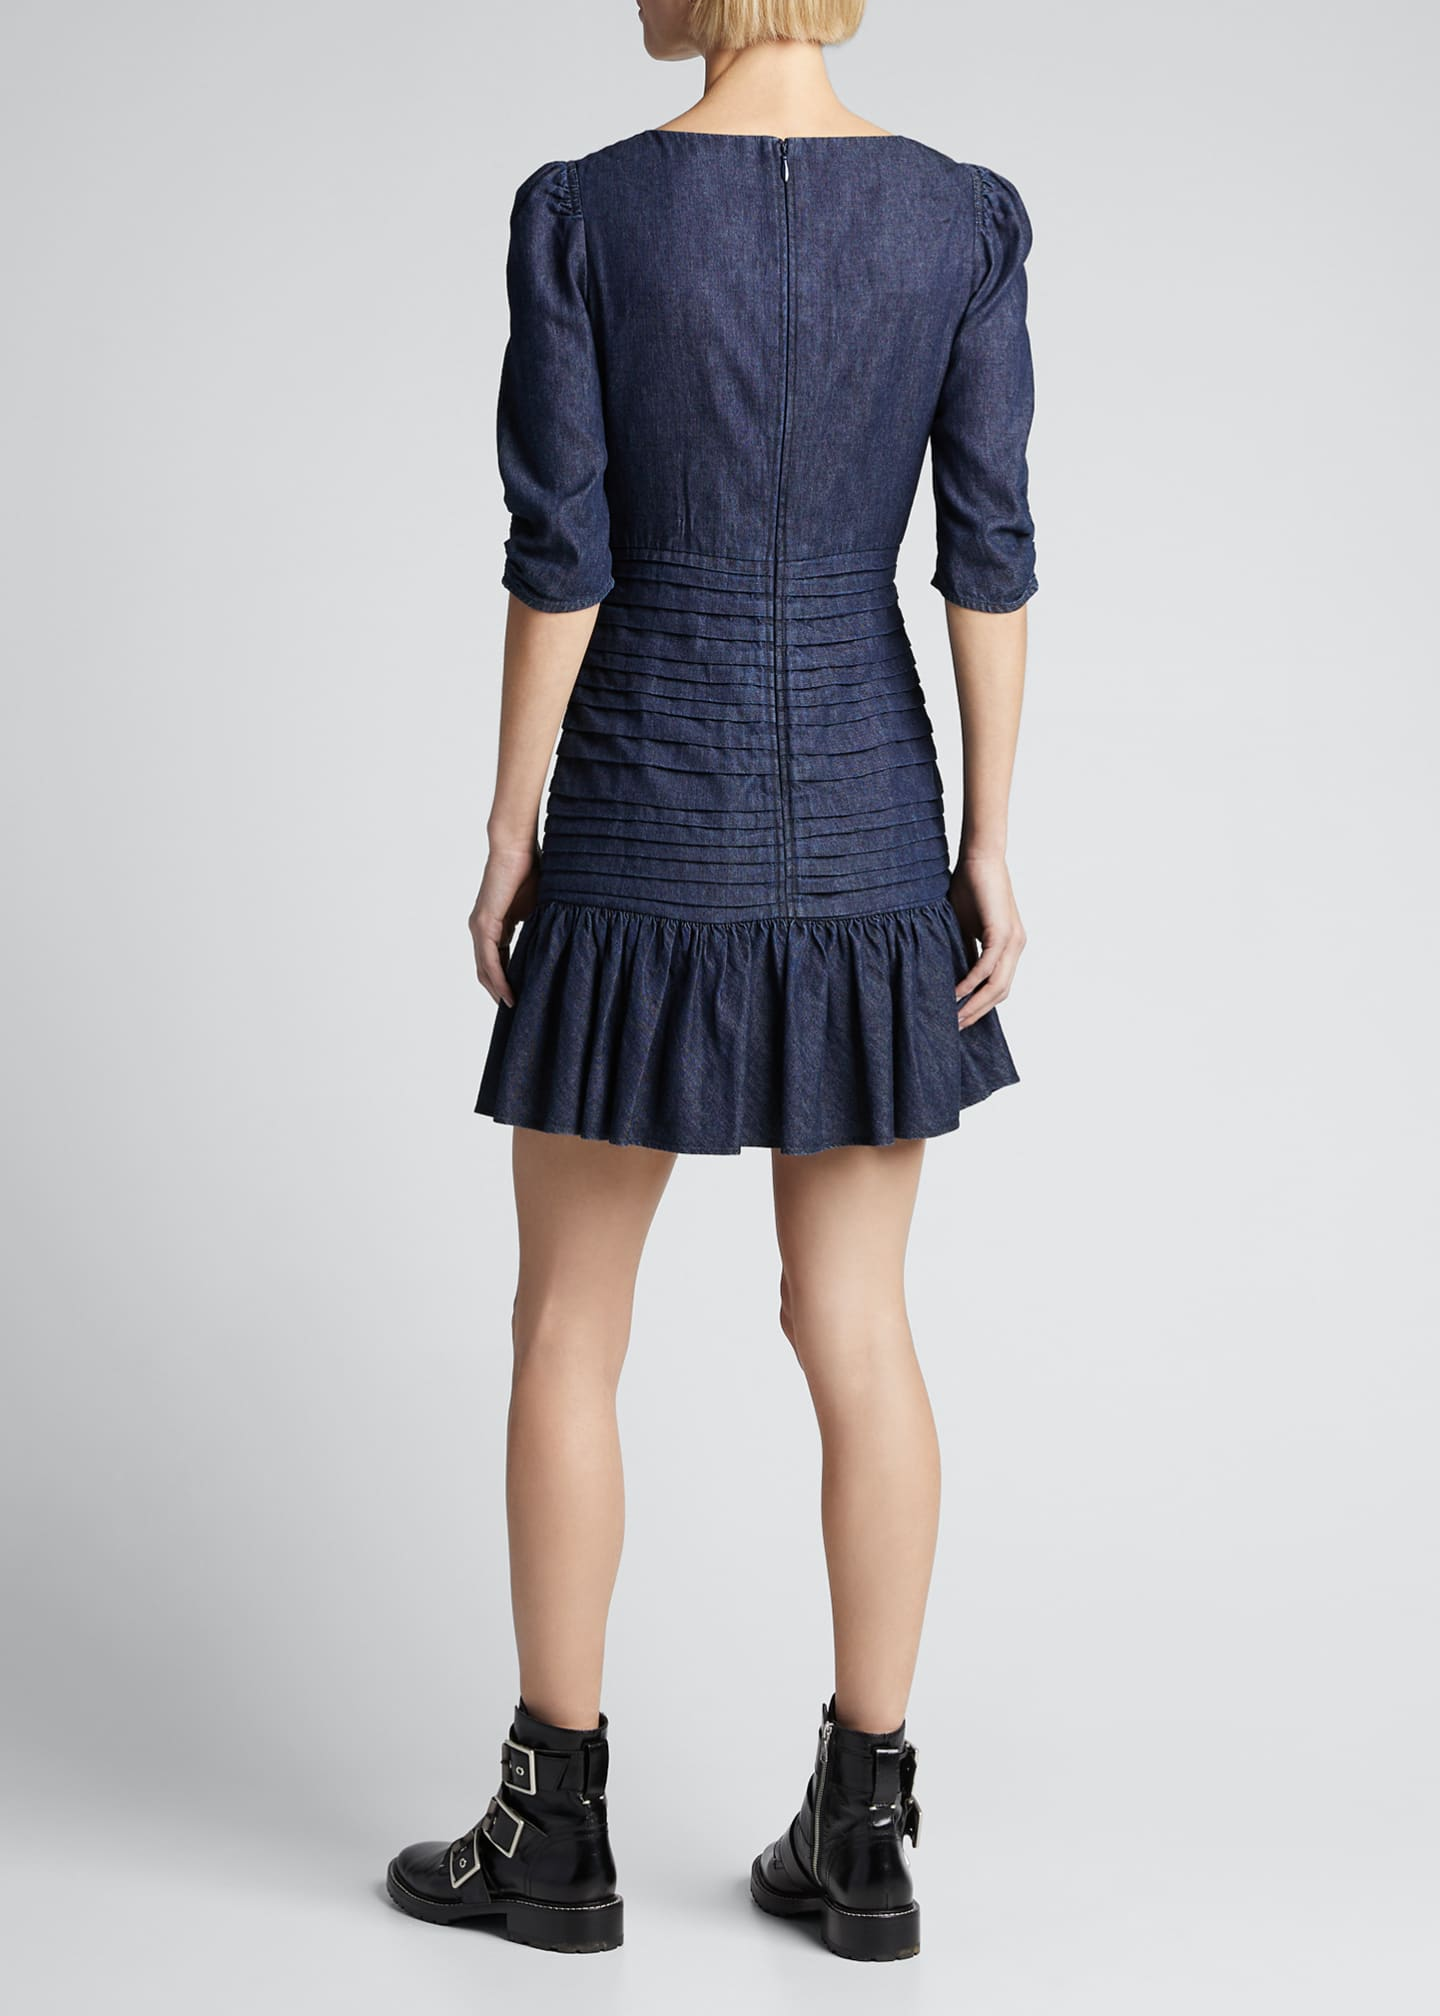 Image 2 of 5: Pansy Ruched Denim Flounce Dress